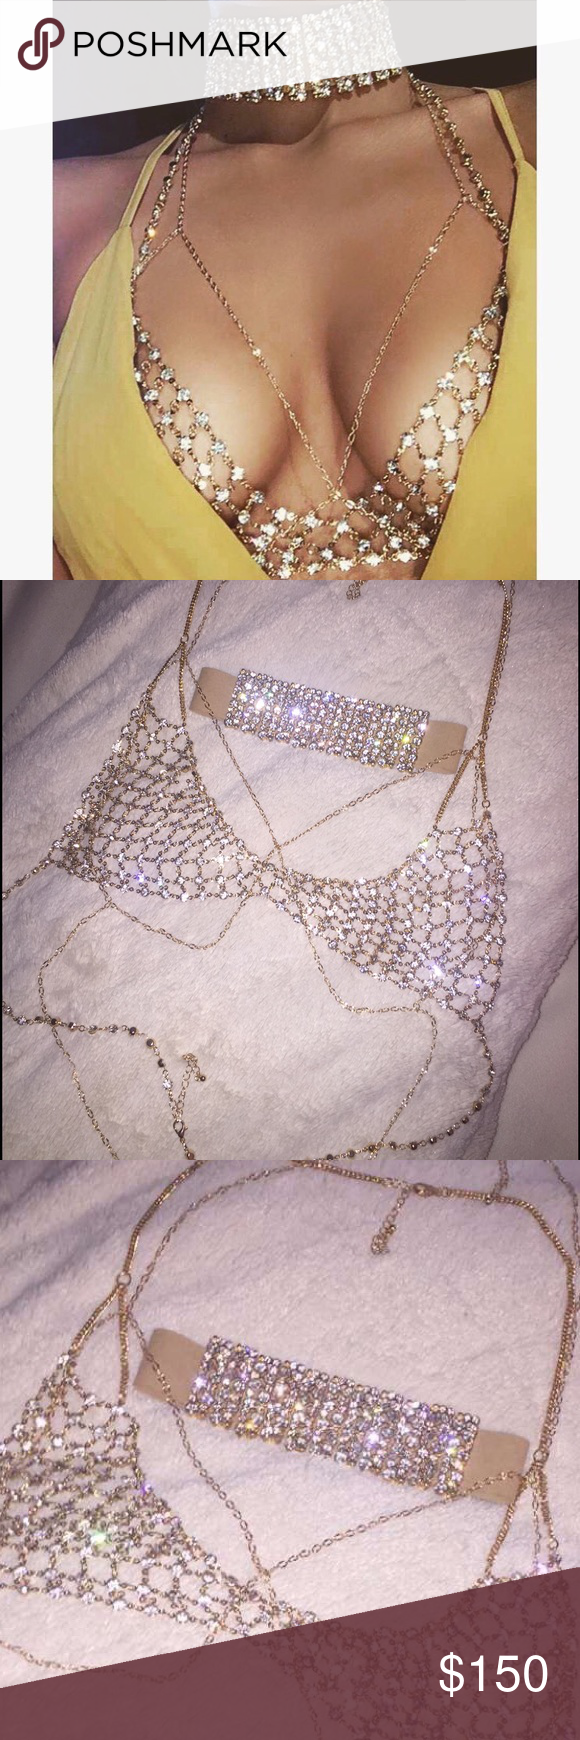 83bfe5d11aeb6e Diamond Choker and Bralette with body chain As seen on Desi Perkins. Will  fit a small  medium WINDSOR Intimates   Sleepwear Bras